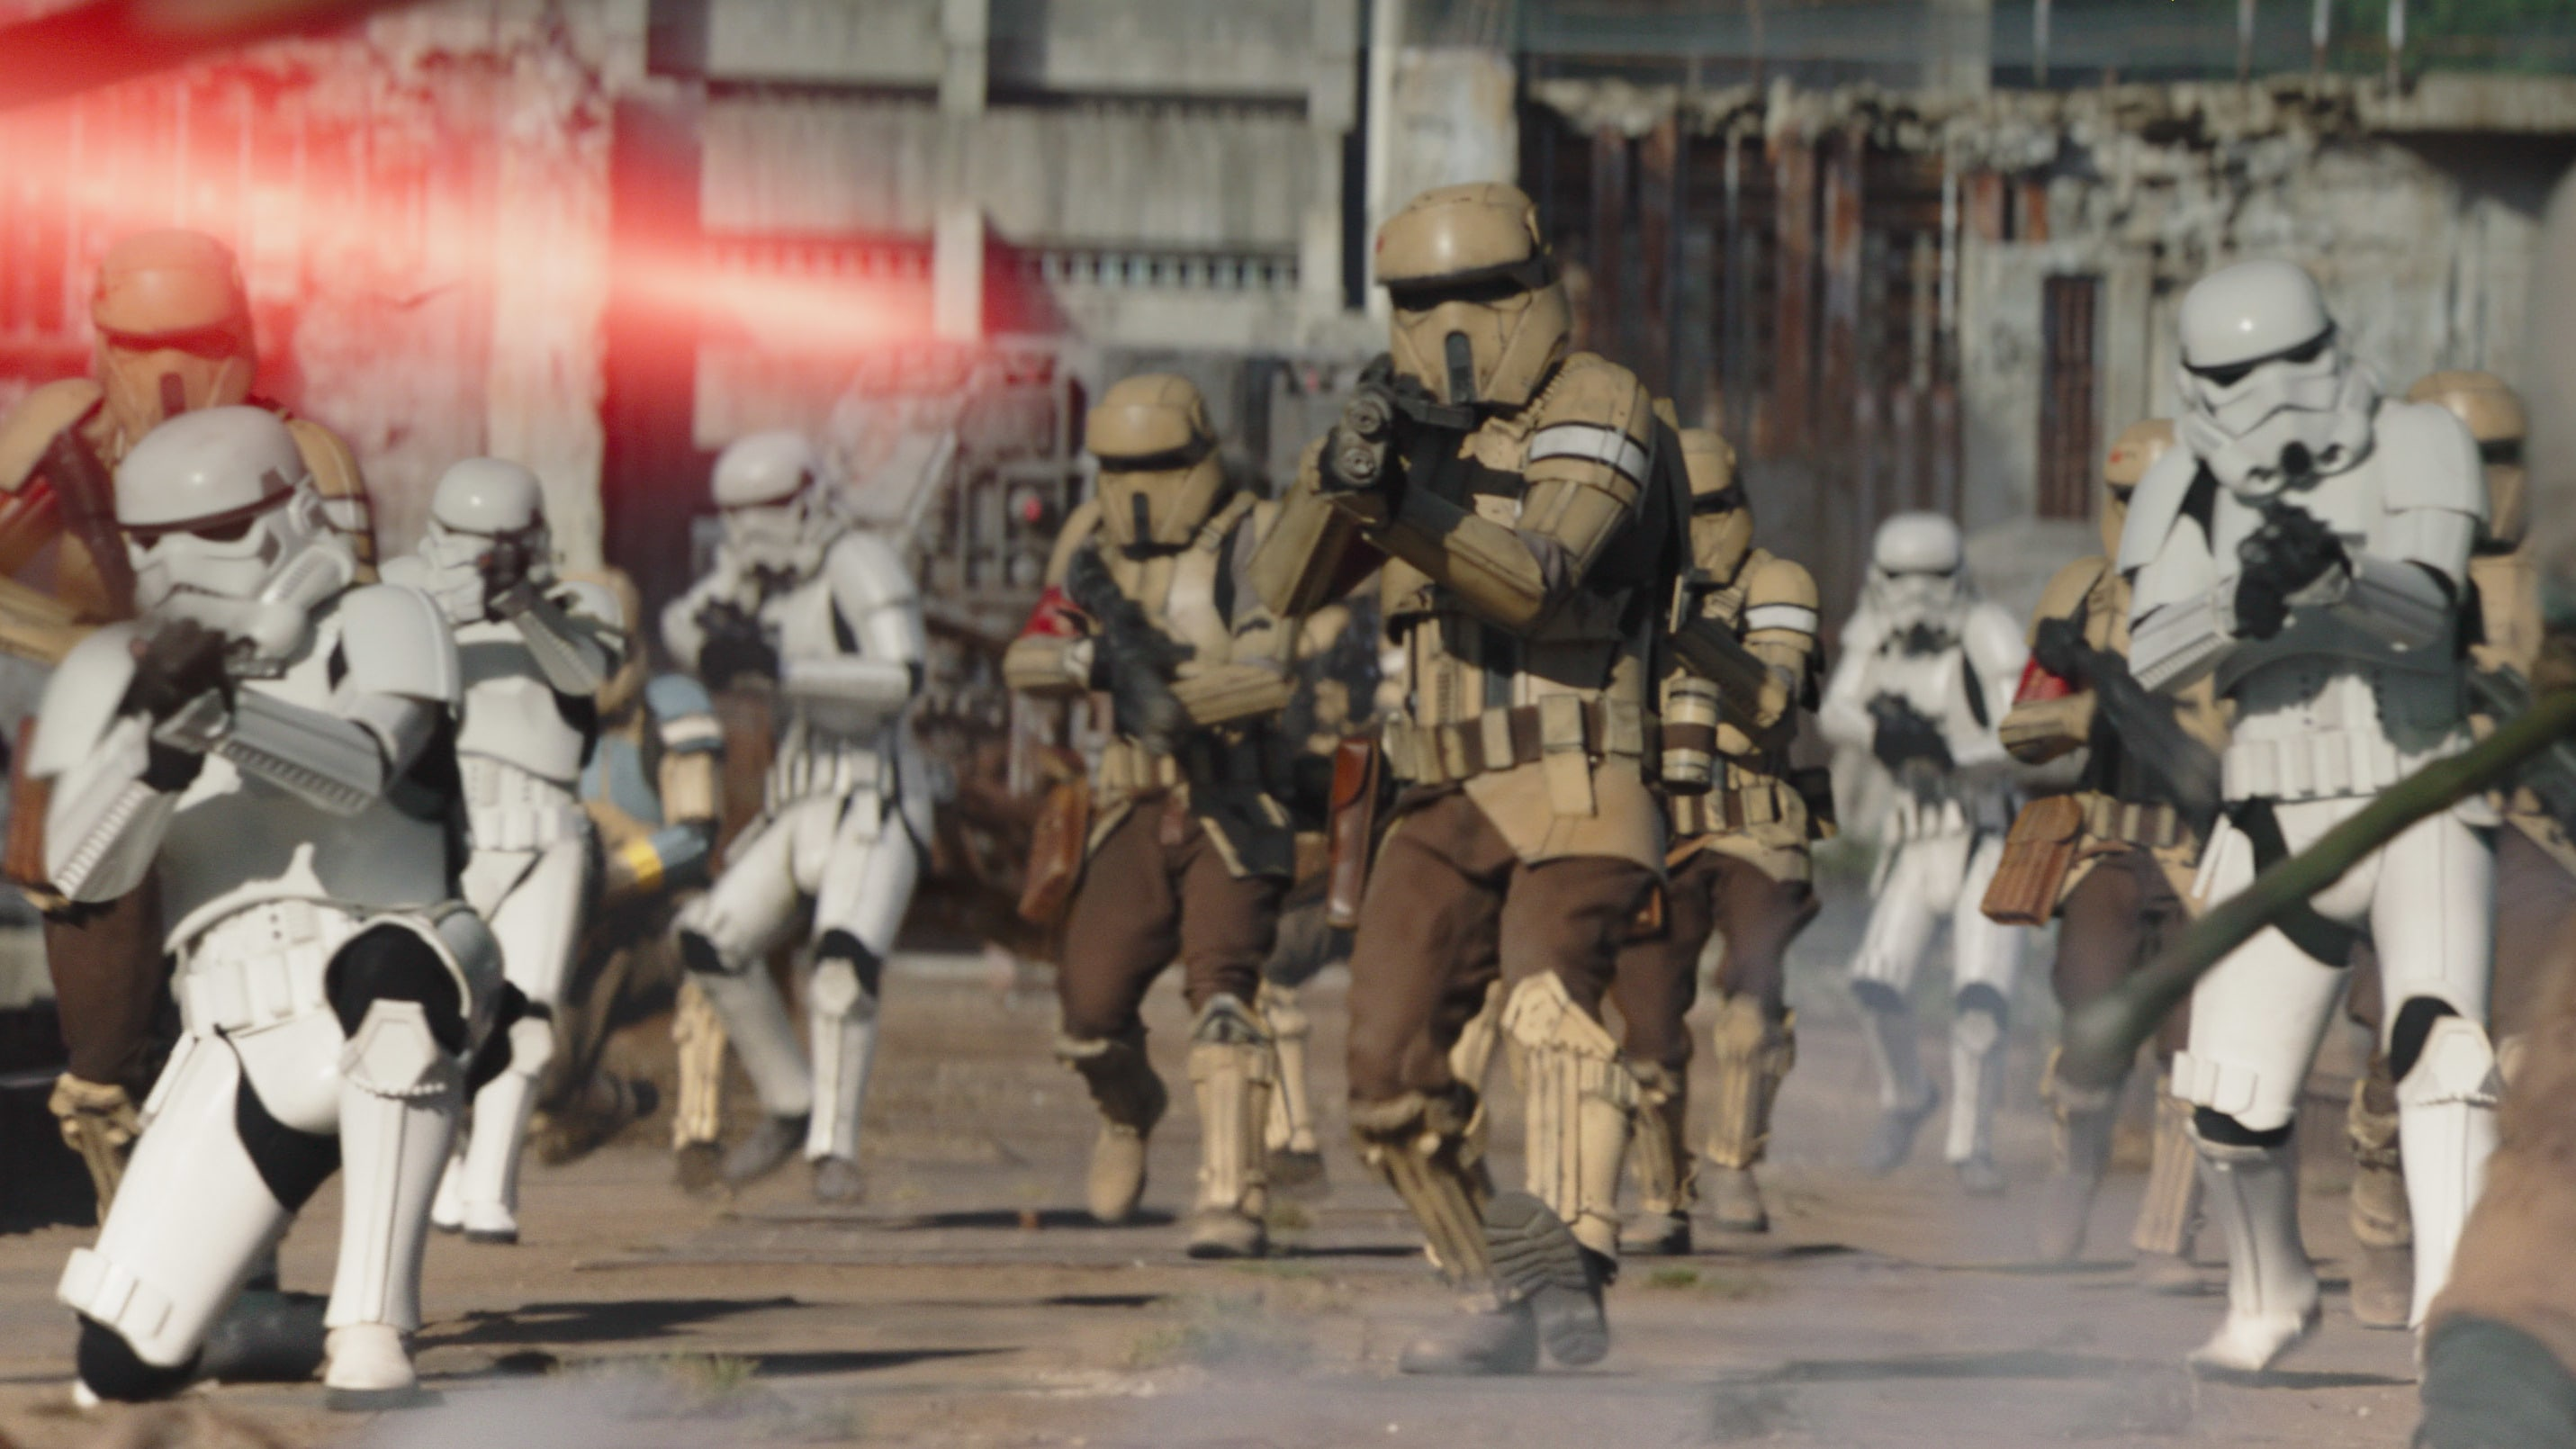 Stormtrooper and Shoretroopers in Lucasfilm's THE MANDALORIAN, season two, exclusively on Disney+. © 2020 Lucasfilm Ltd. & ™. All Rights Reserved.